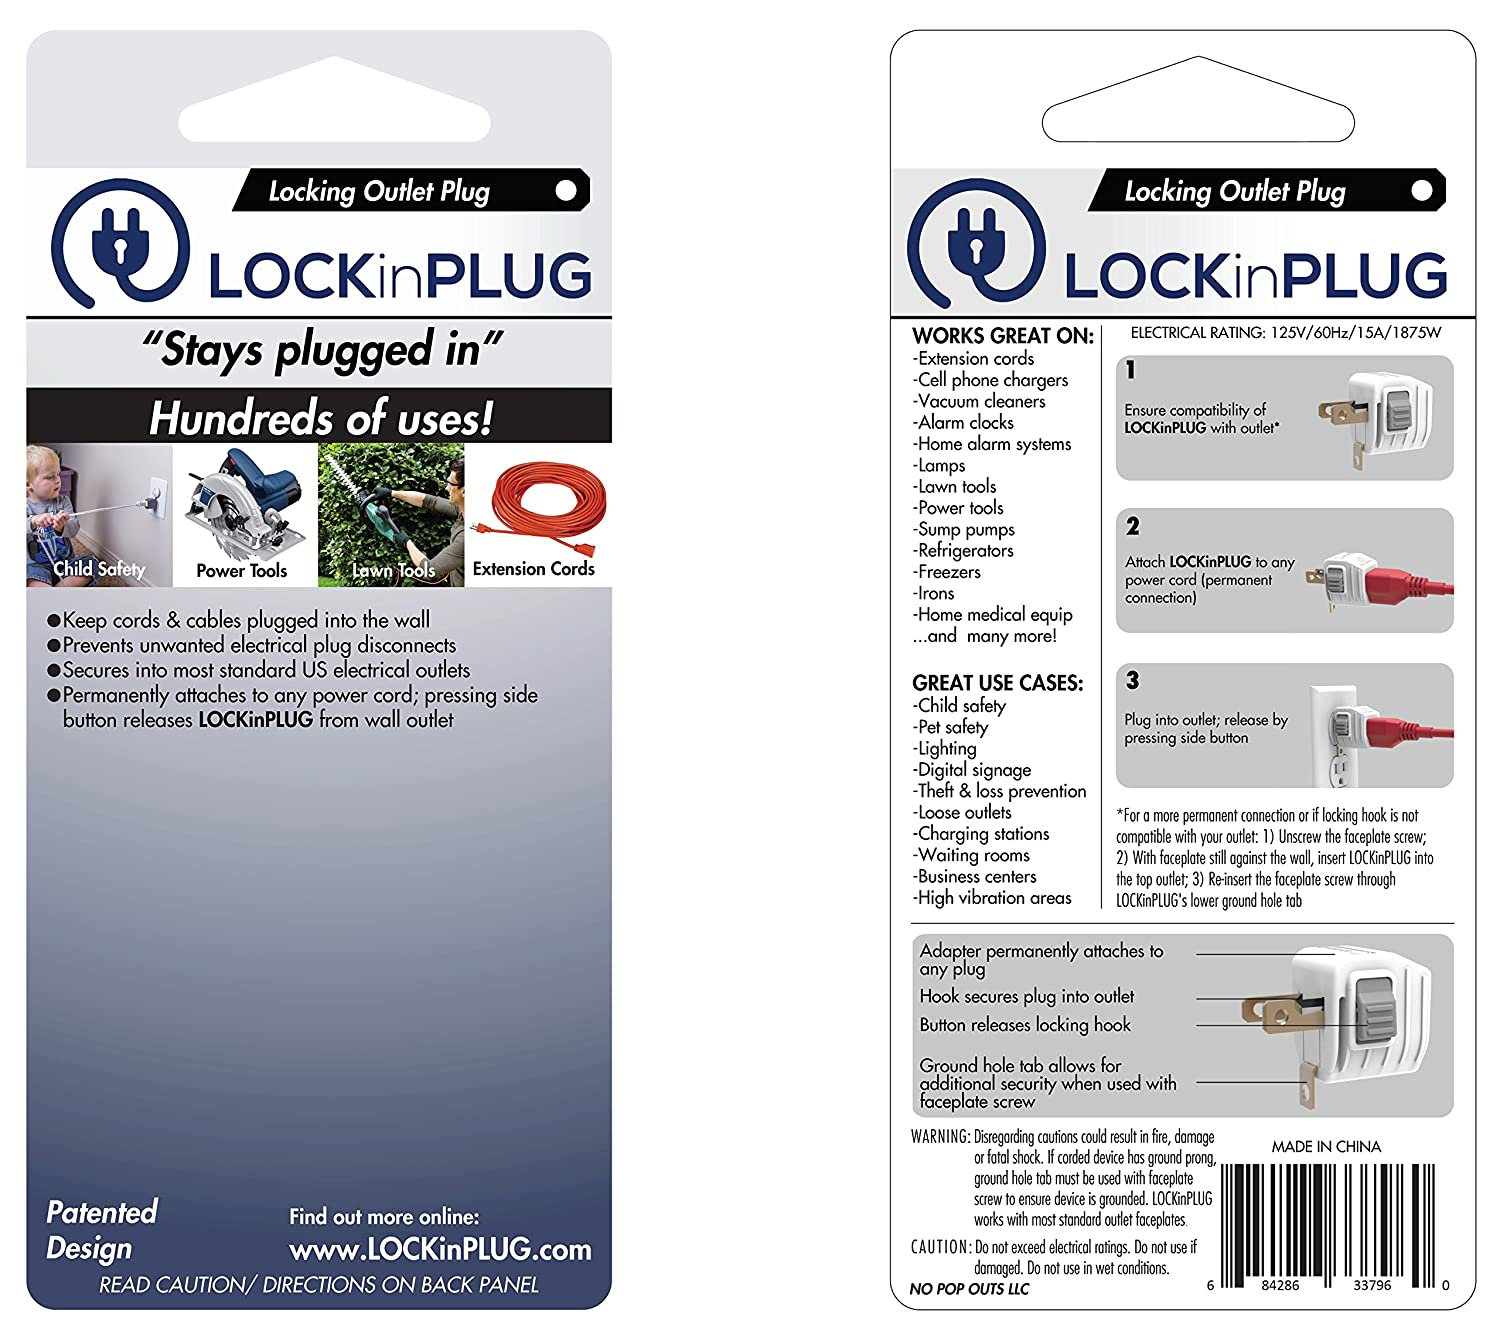 Amazon lock in plug lock secure any plugcablecordcharger locking wall adapter for electrical outlets baby proof extension cords critical appliances petchild safety baby publicscrutiny Image collections